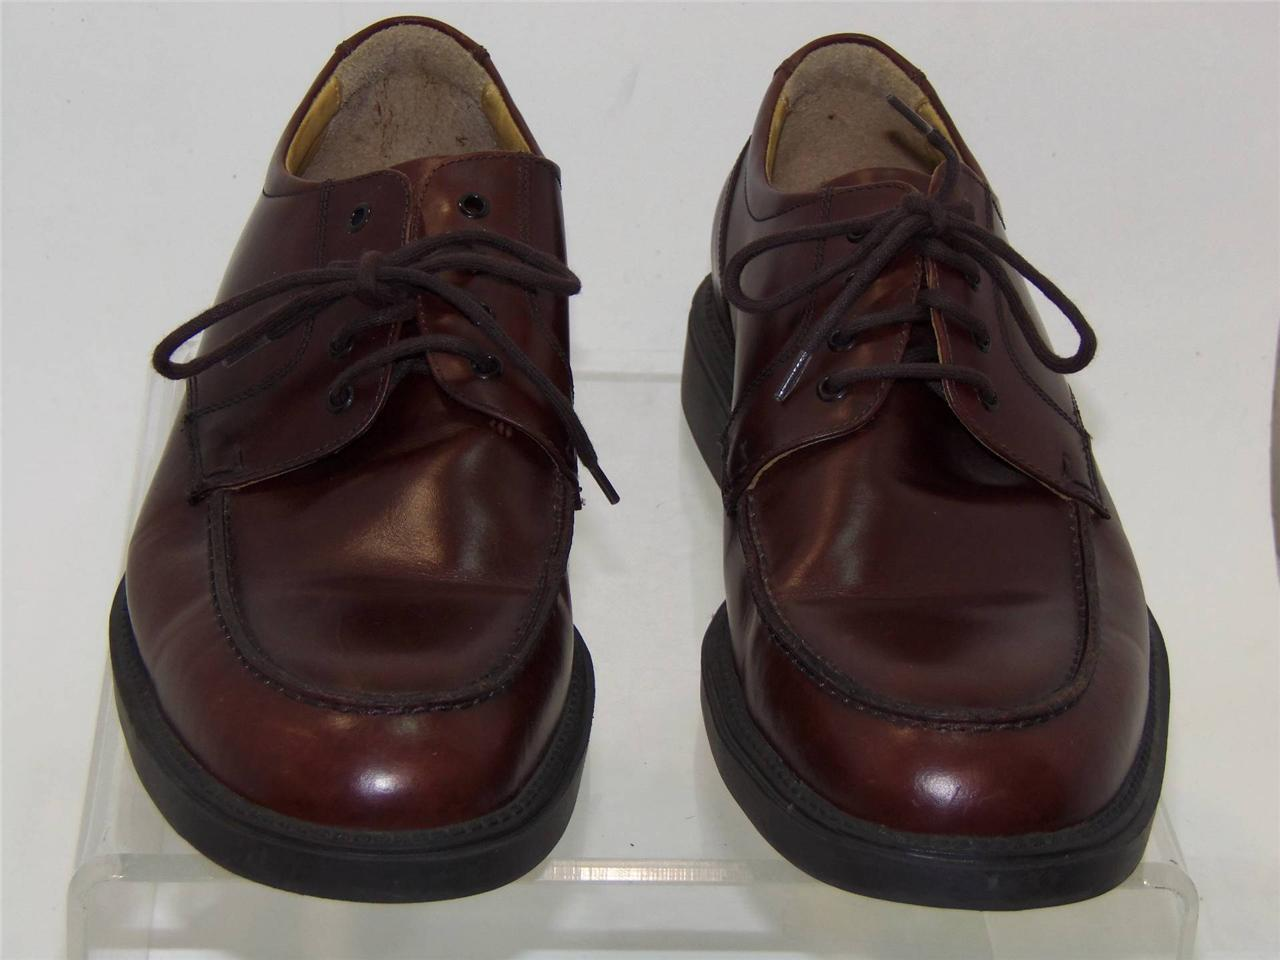 JOHNSTON MURPHY 10M BROWN HANDCRAFTED BRAZIL 20 4559 BROWN 10M 4 HOLE RUB OFF BROWN OXFORD 697558